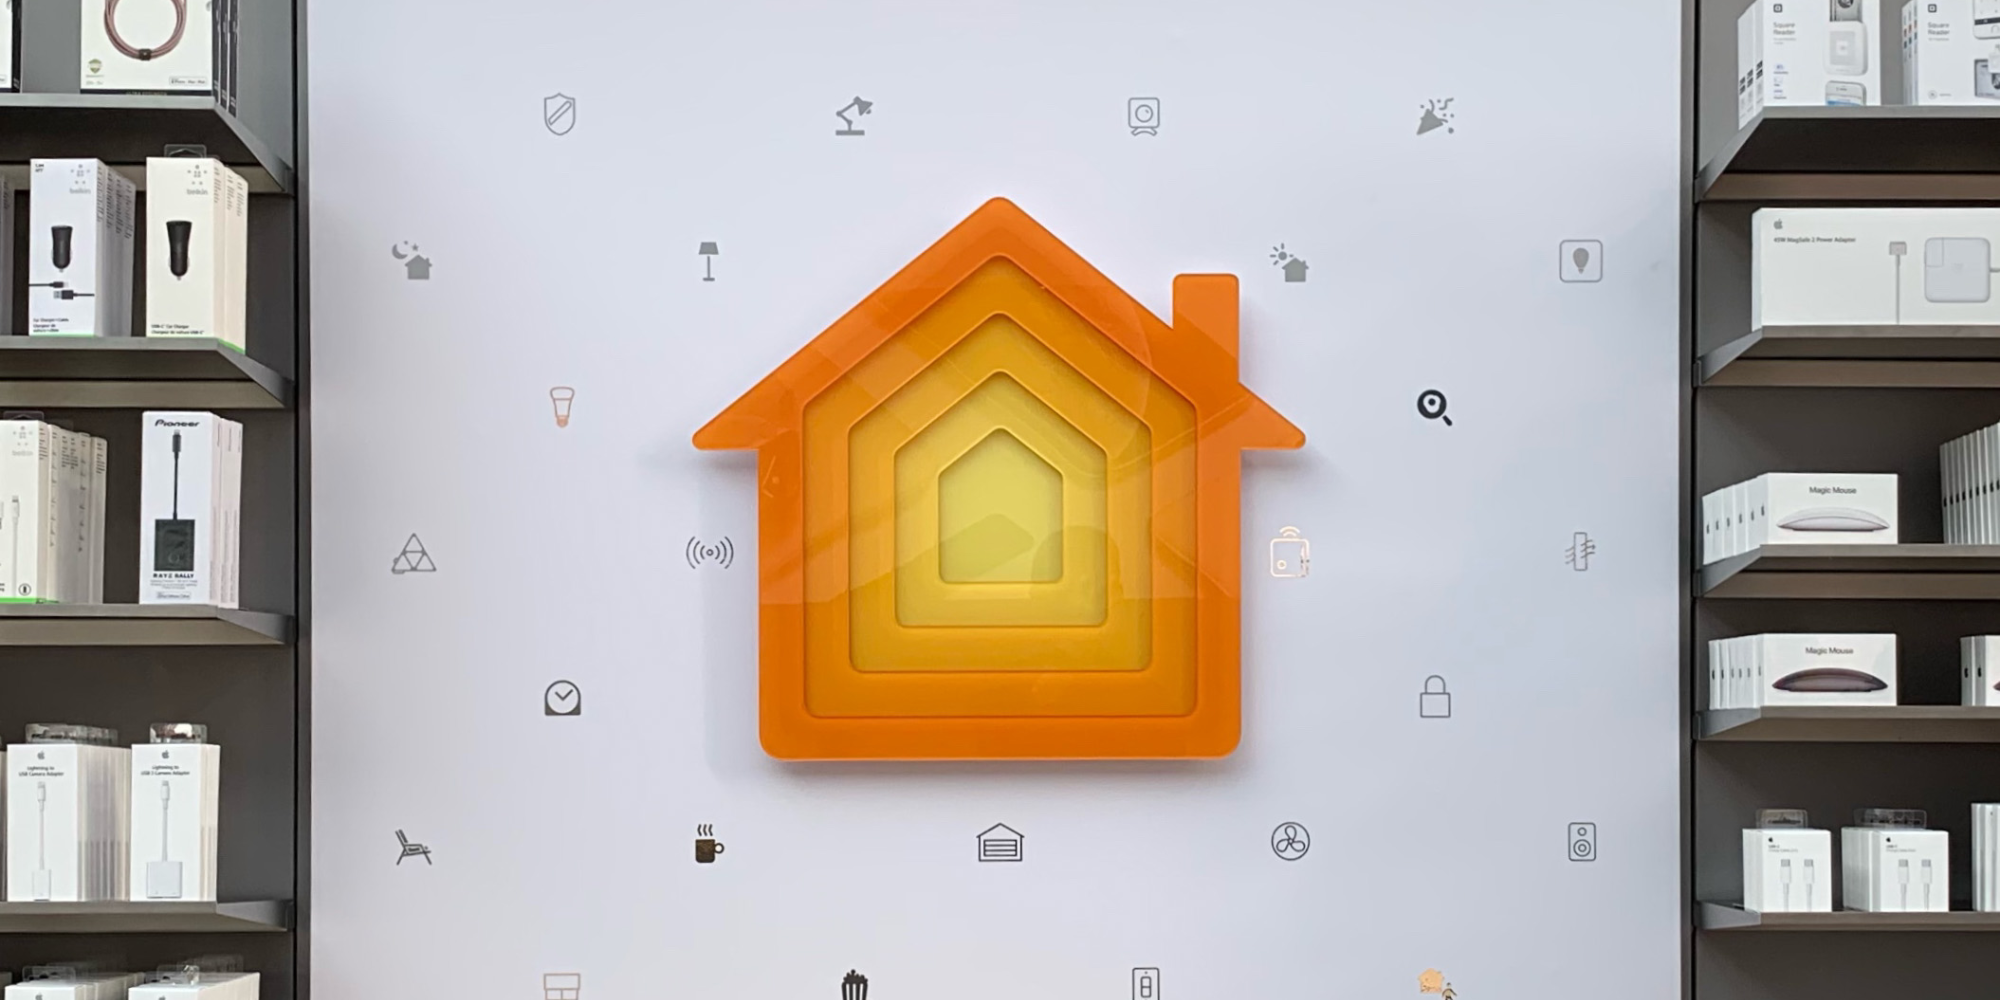 HomeKit Weekly: Find out about the latest products, accessories, and gear for Apple's smart home platform - cover